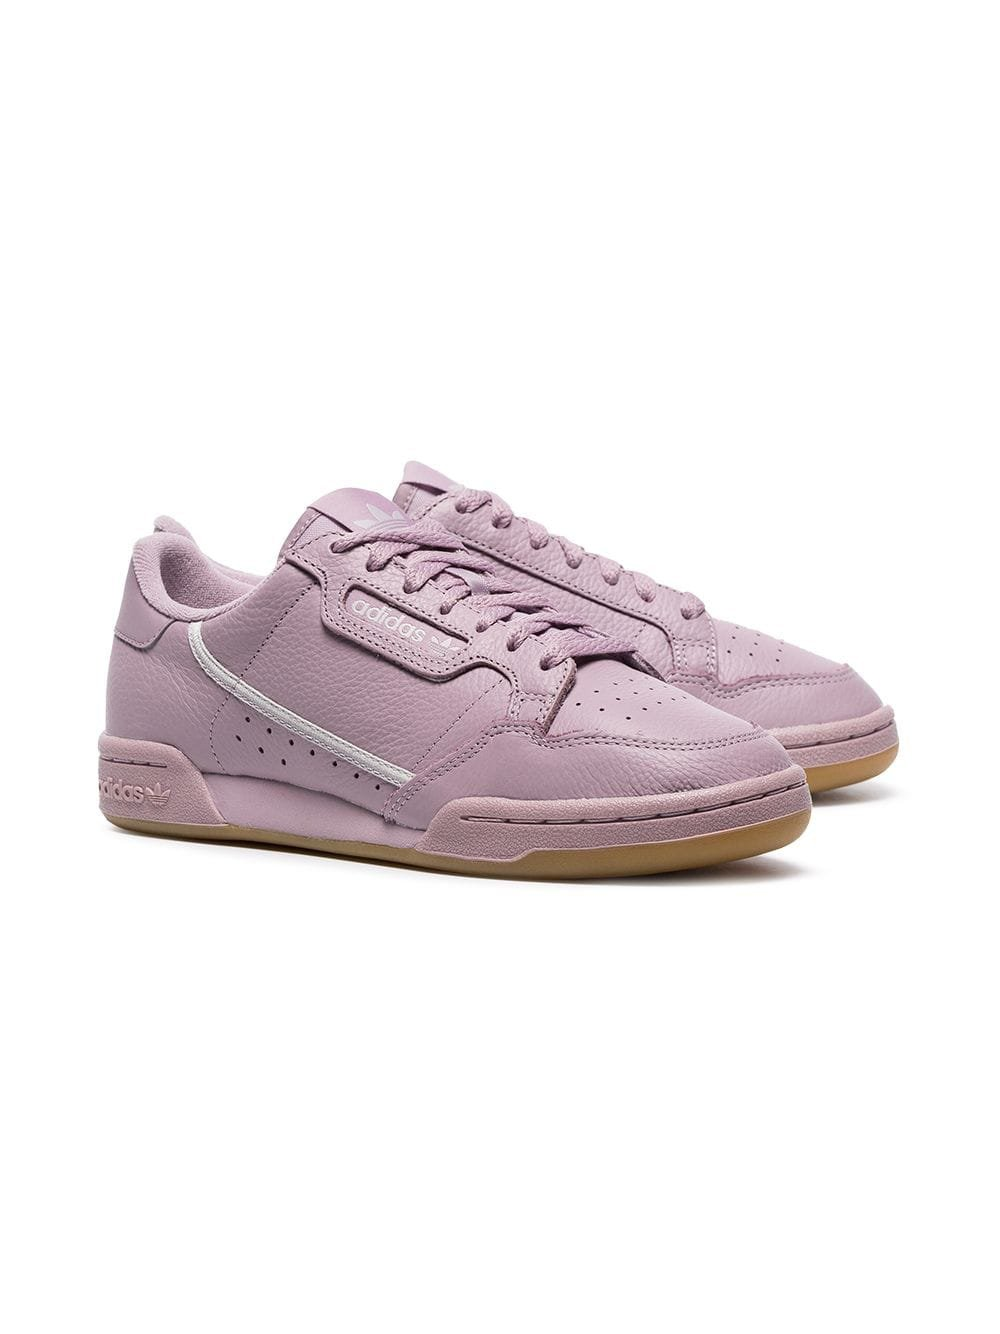 Adidas Light Purple Continental 80s Leather Sneakers - Farfetch